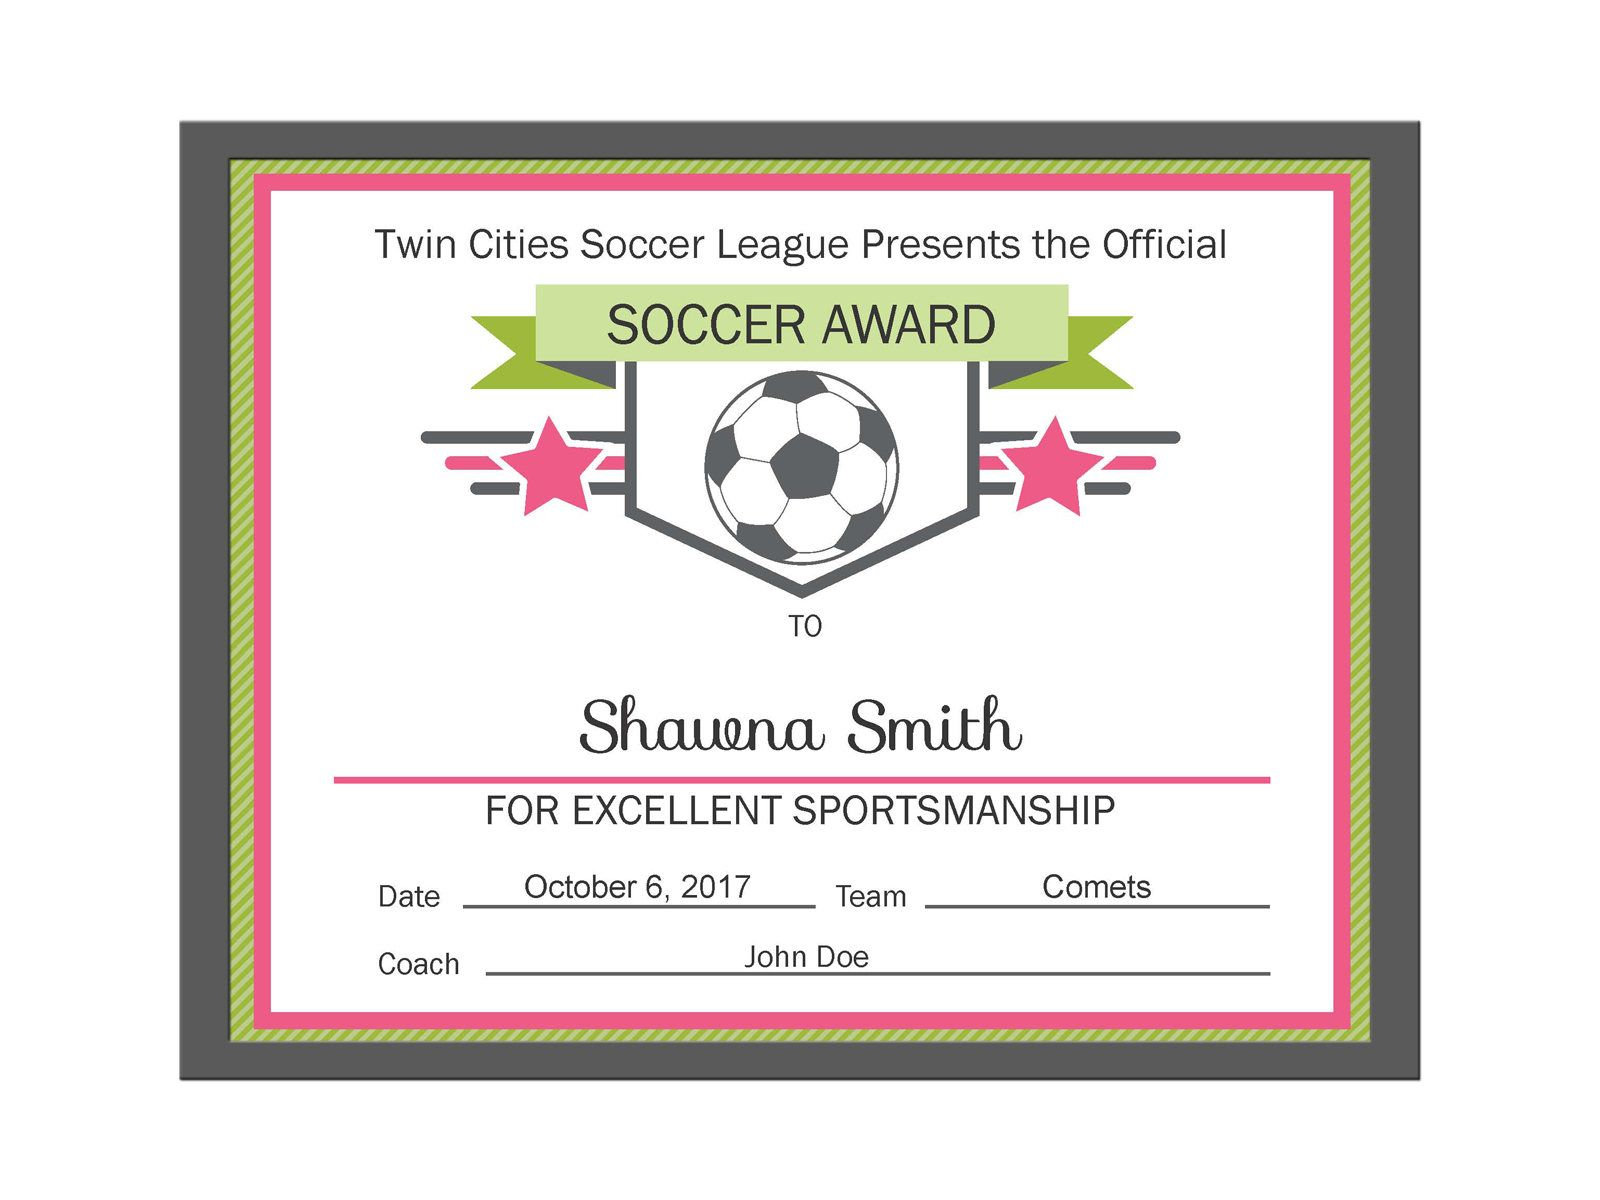 editable pdf sports team soccer certificate award template in 3